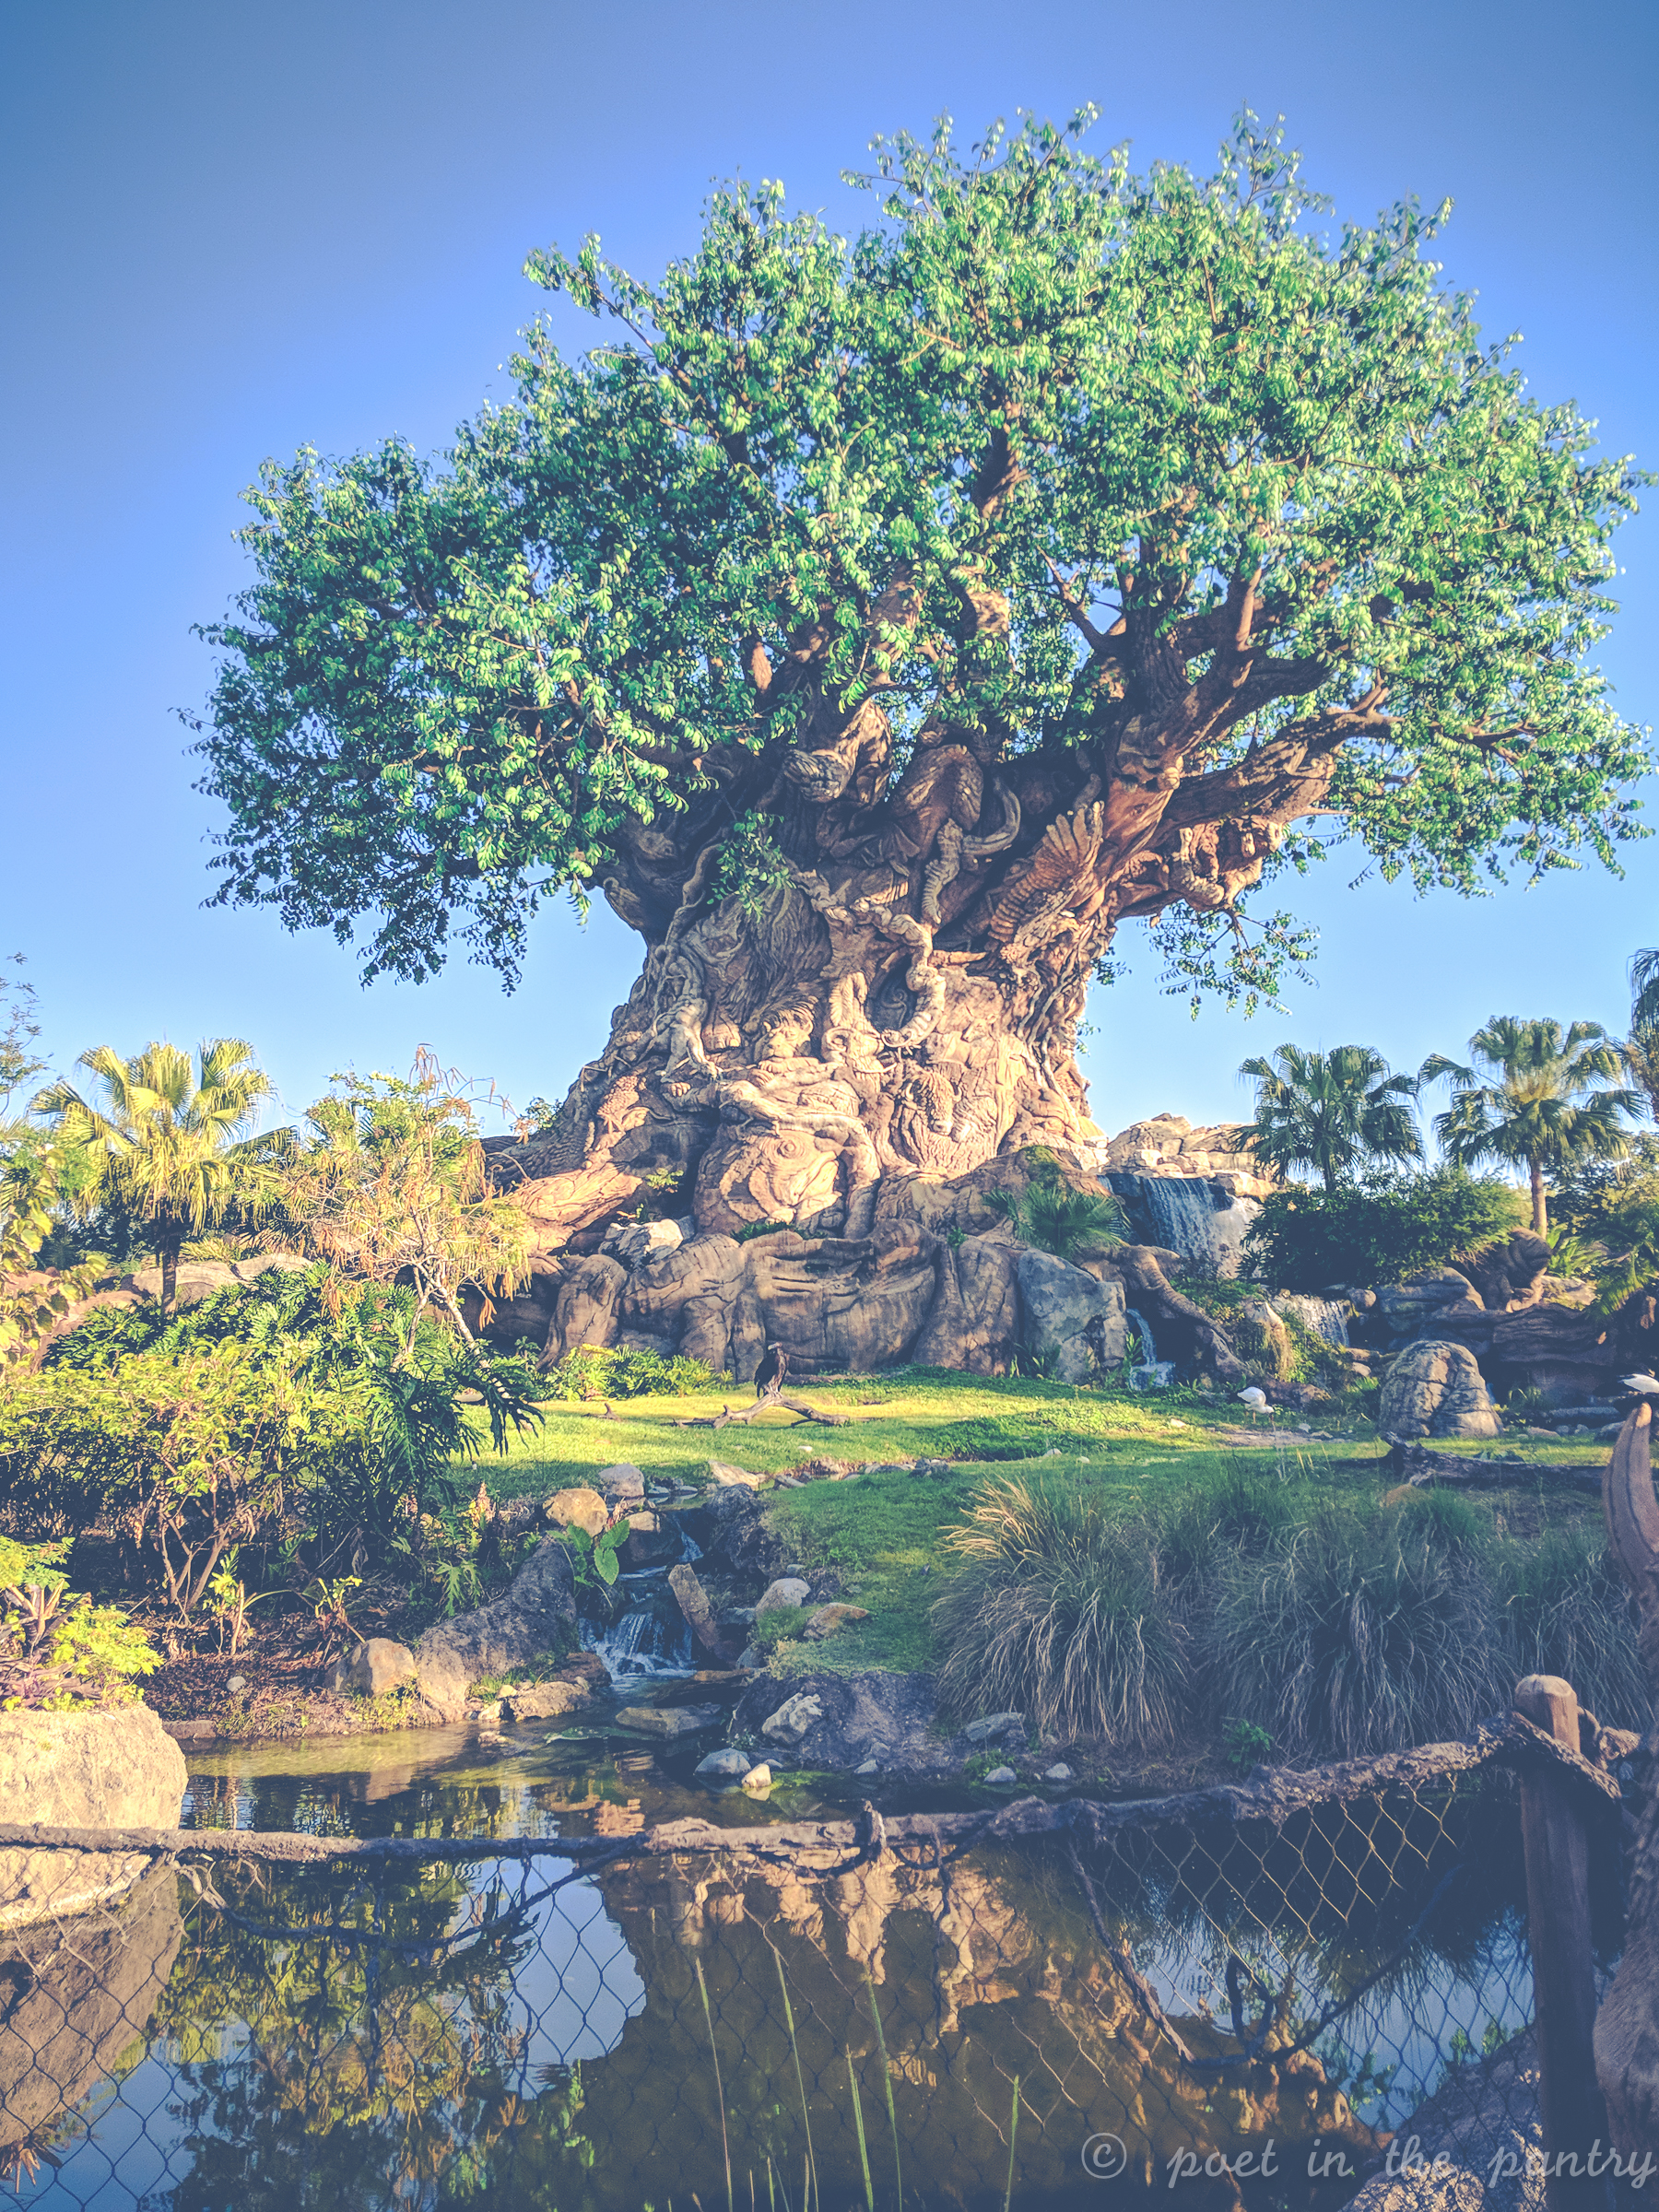 5 Ways To Make The Most Of Disney S Animal Kingdom Poet In The Pantry